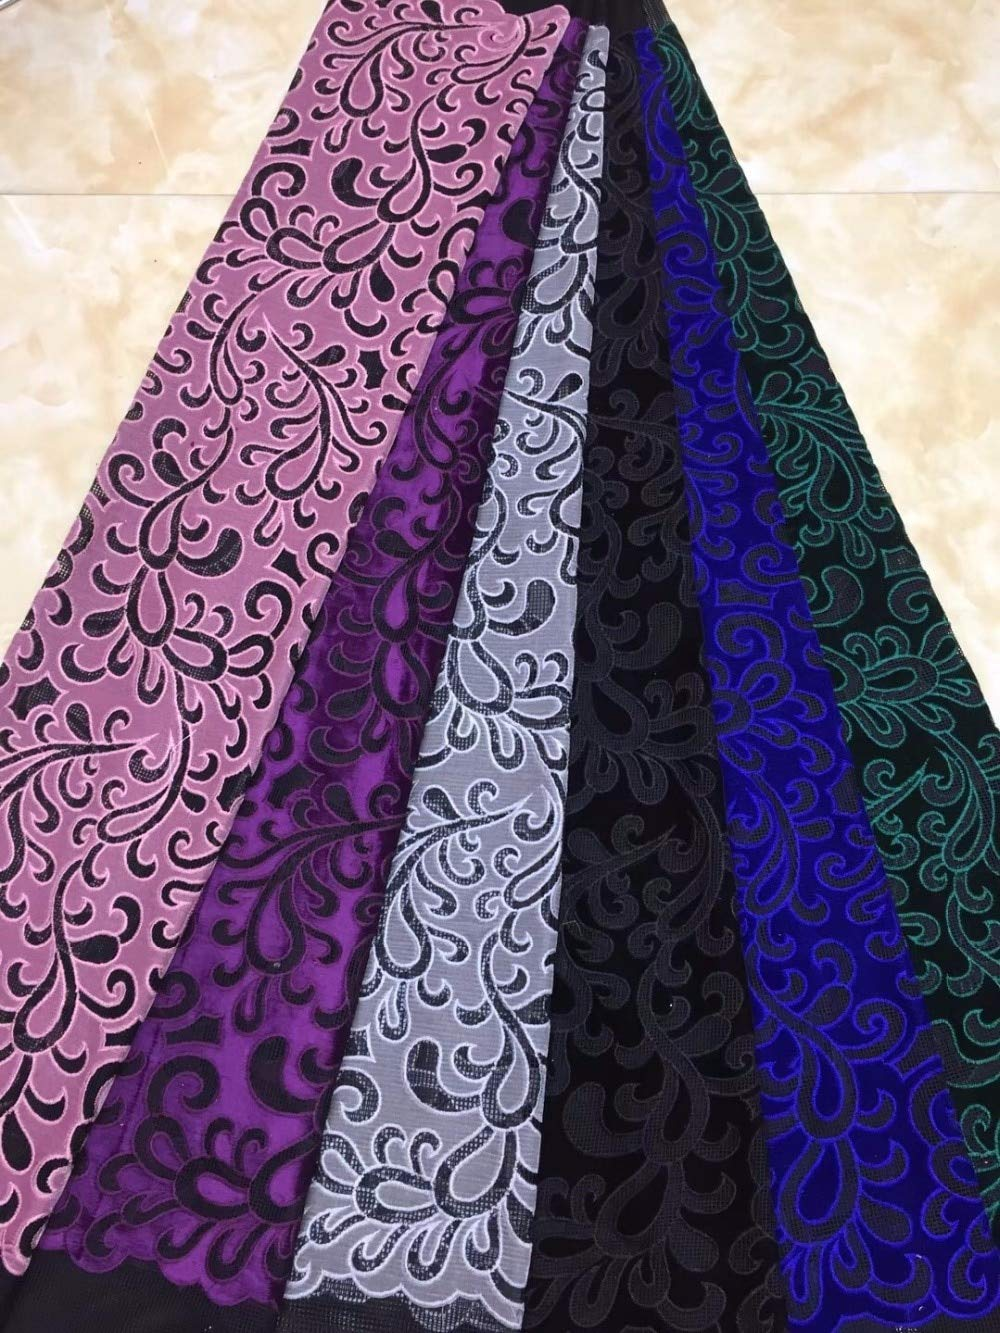 Laliva French Nigerian Laces Fabric Tulle African Laces Fabric Wedding African French Tulle Lace - (Color: 6)